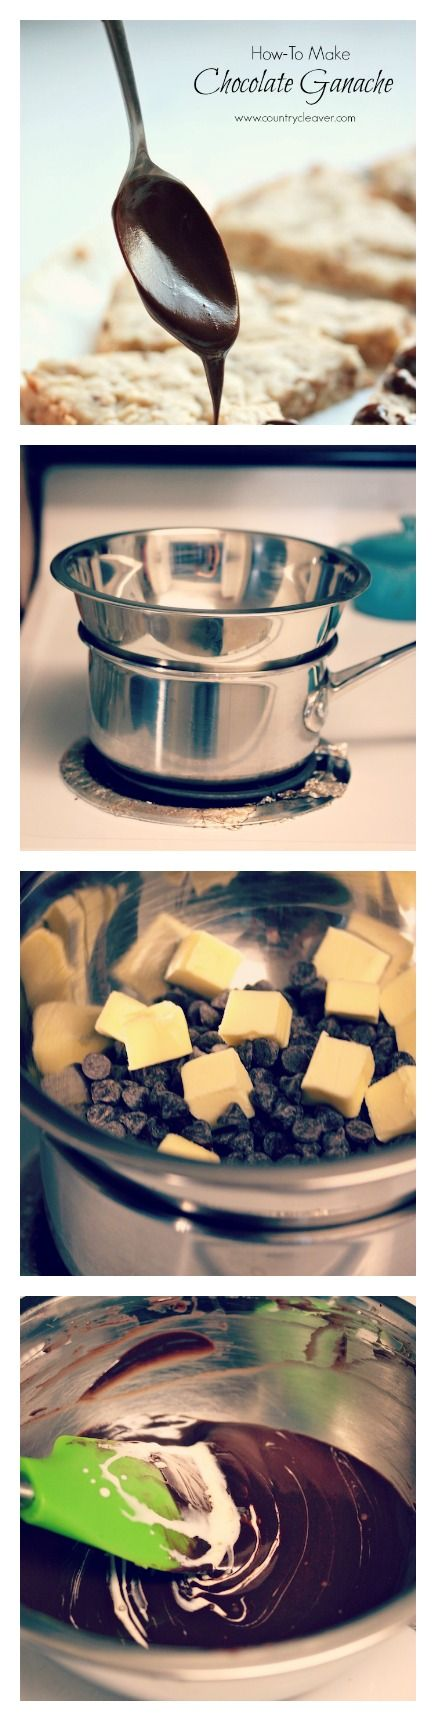 How to Make Chocolate Ganache - So Easy! from Country Cleaver